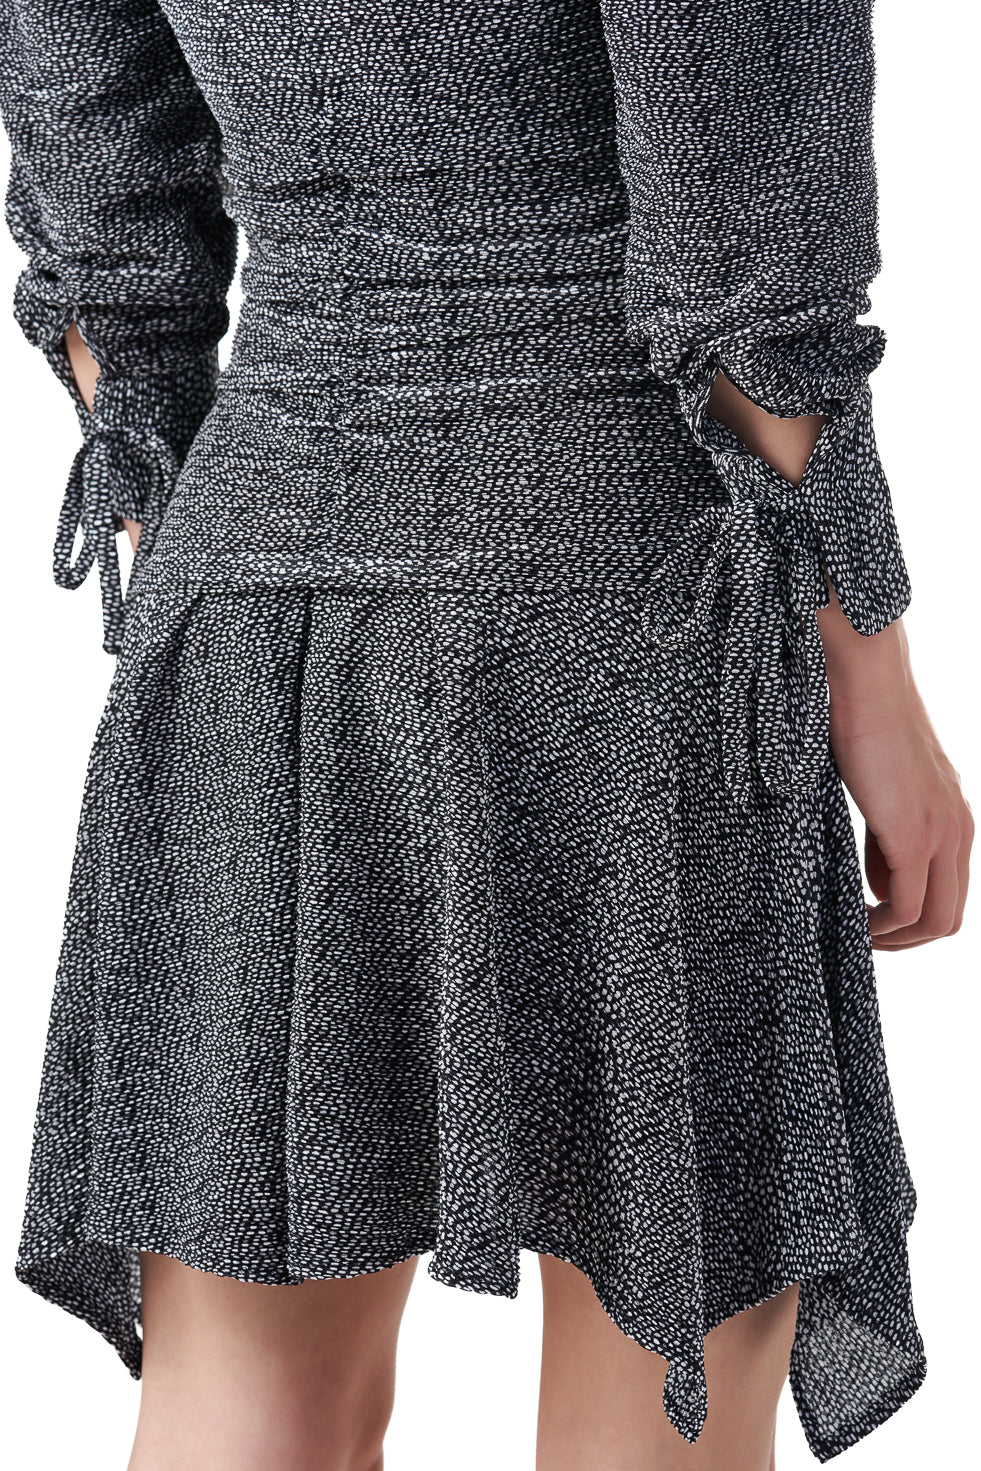 Rome Padded long sleeve asymmetric frill dress